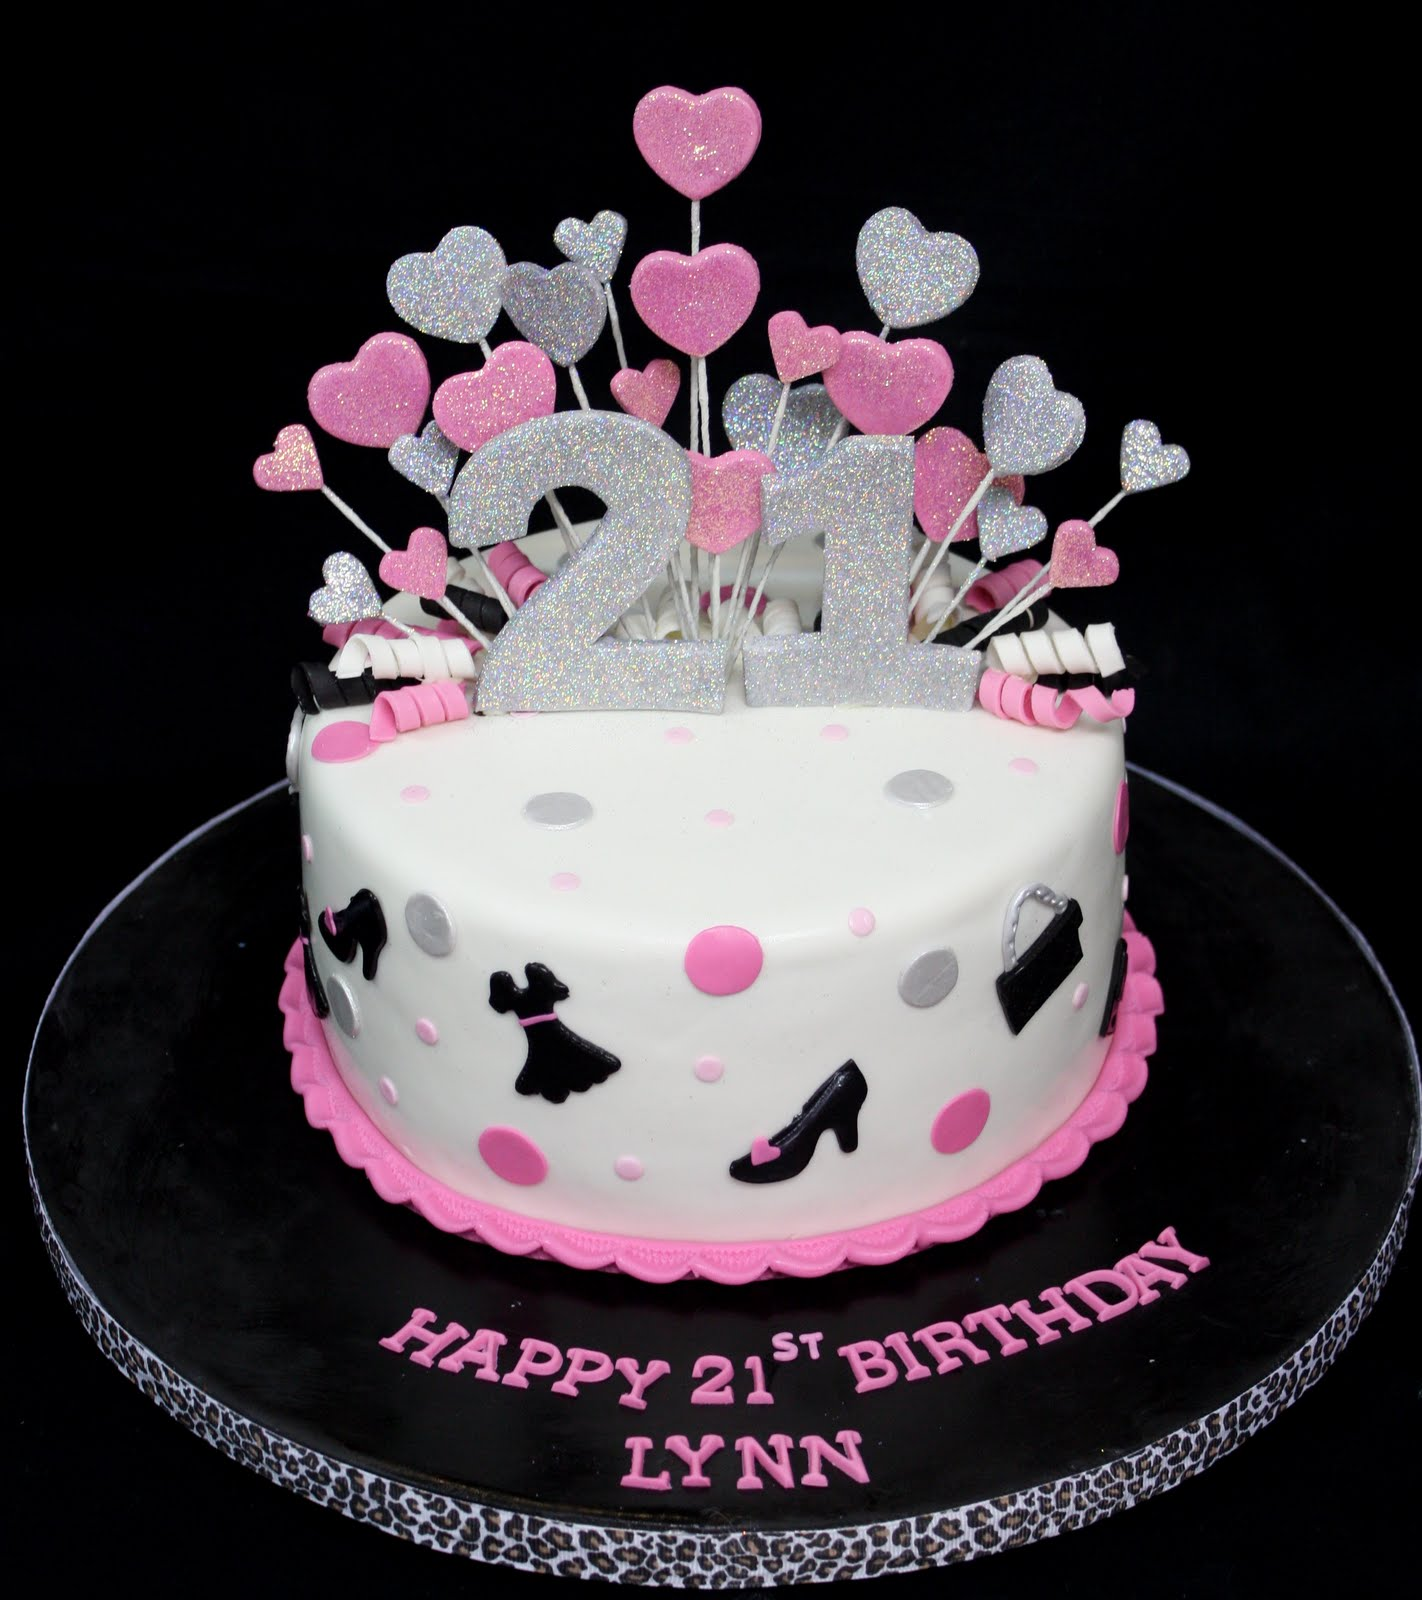 birthday cake design ideas ; ideas-for-decorating-a-21st-birthday-cake